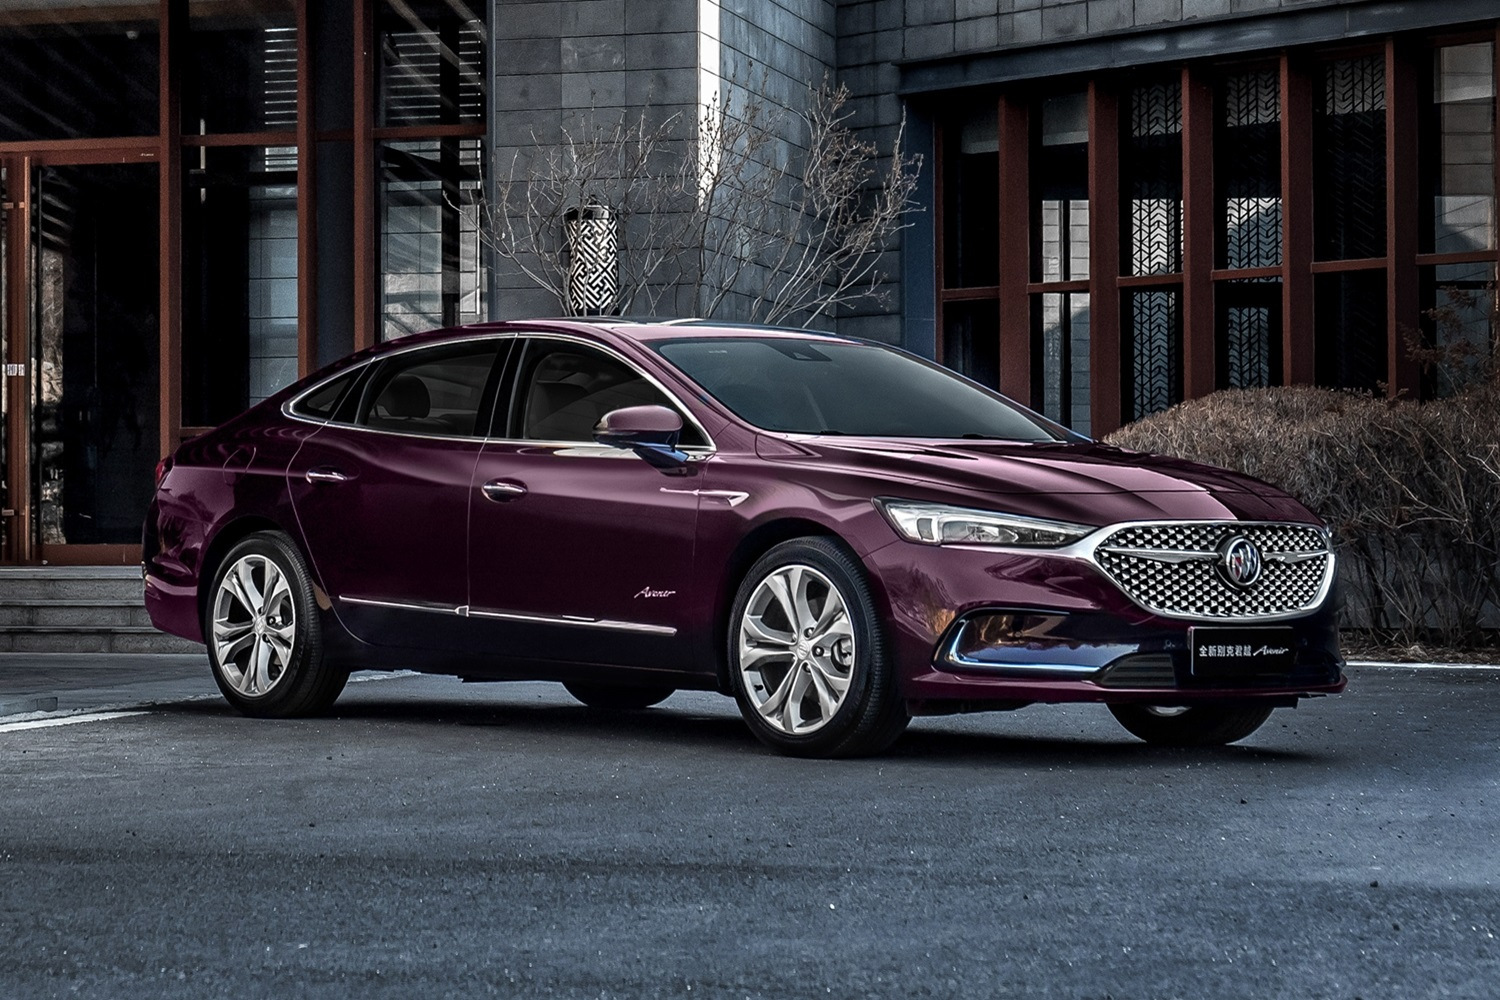 2021 Buick Lacrosse Gets More Refined Than Ever | Gm Authority New 2021 Buick Verano Reviews, Used, Price